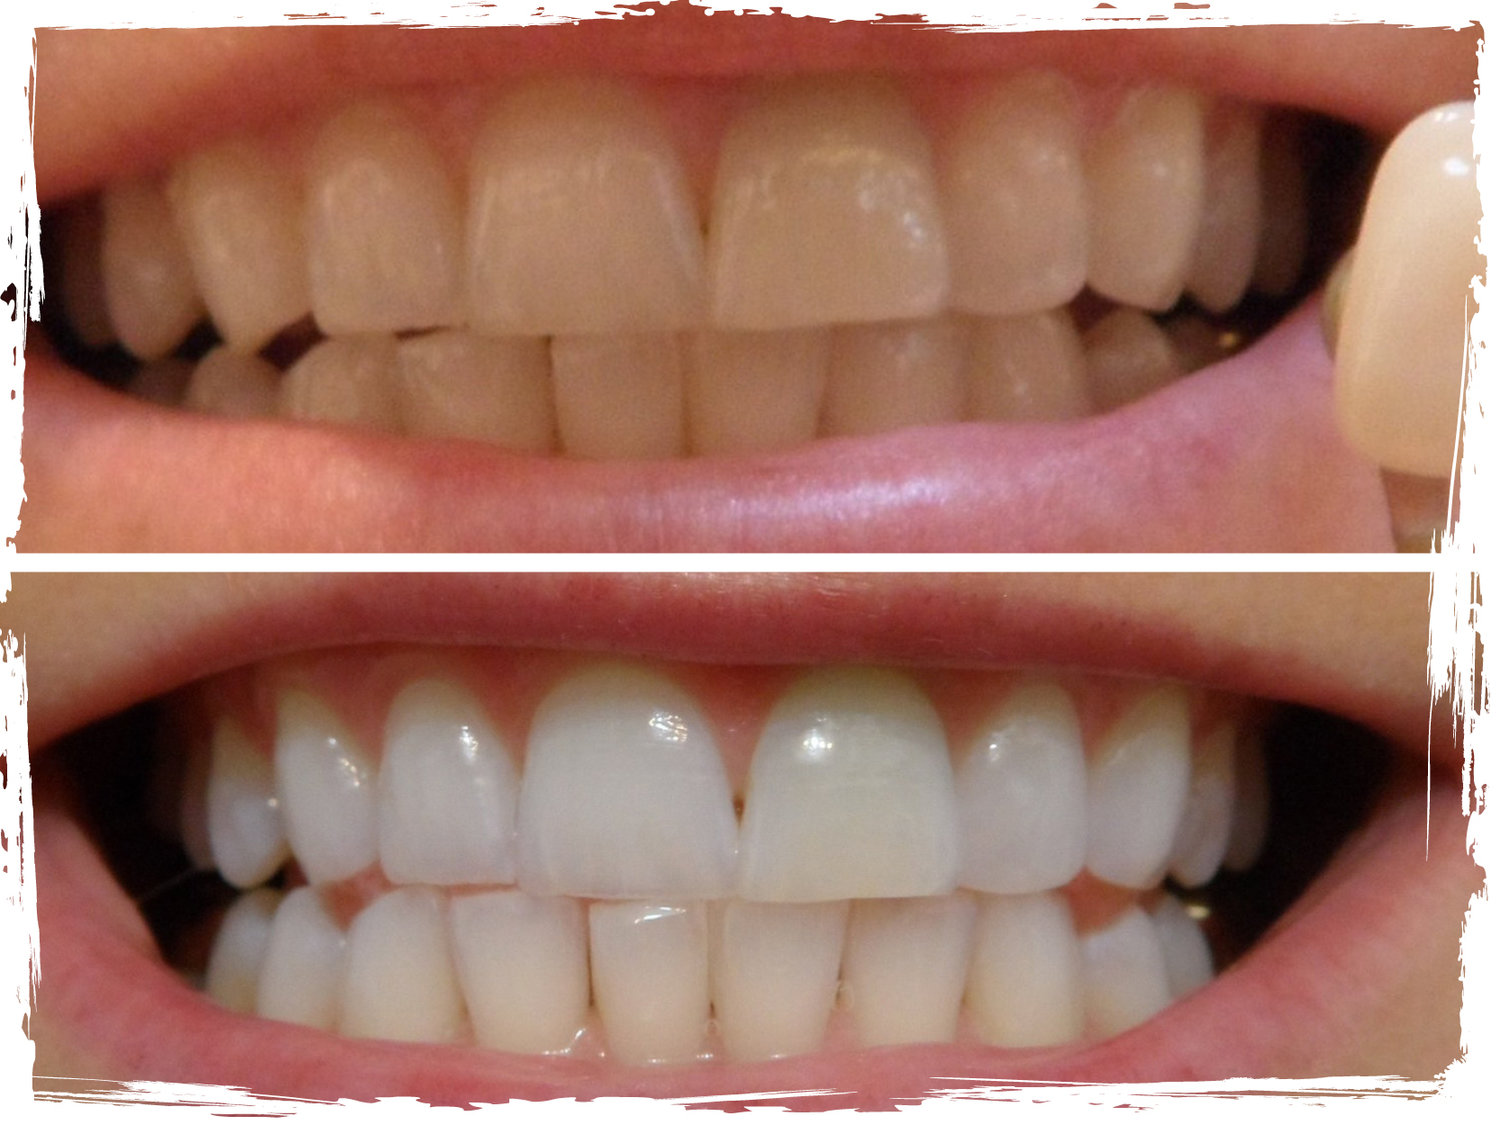 TeethWhitening_BeforeandAfter2.jpeg